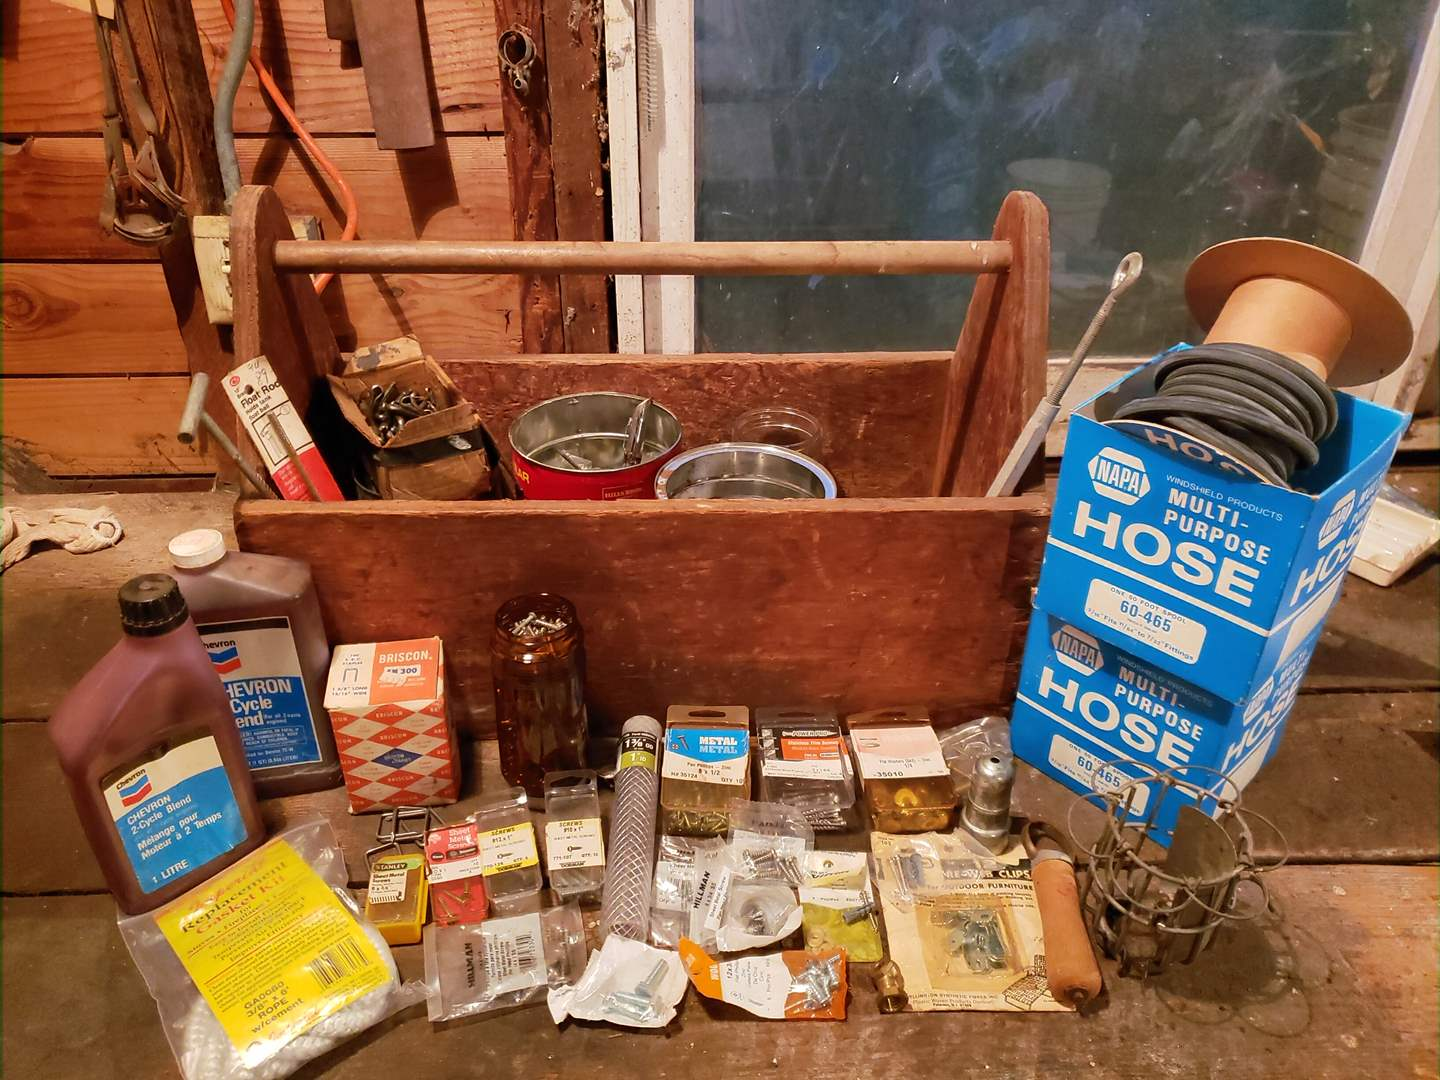 Lot # 8 - Tools * Awesome Old Wooden Handled Tool Box * Hose * Oil * Misc. Screws * Box of Cotter Pins (main image)